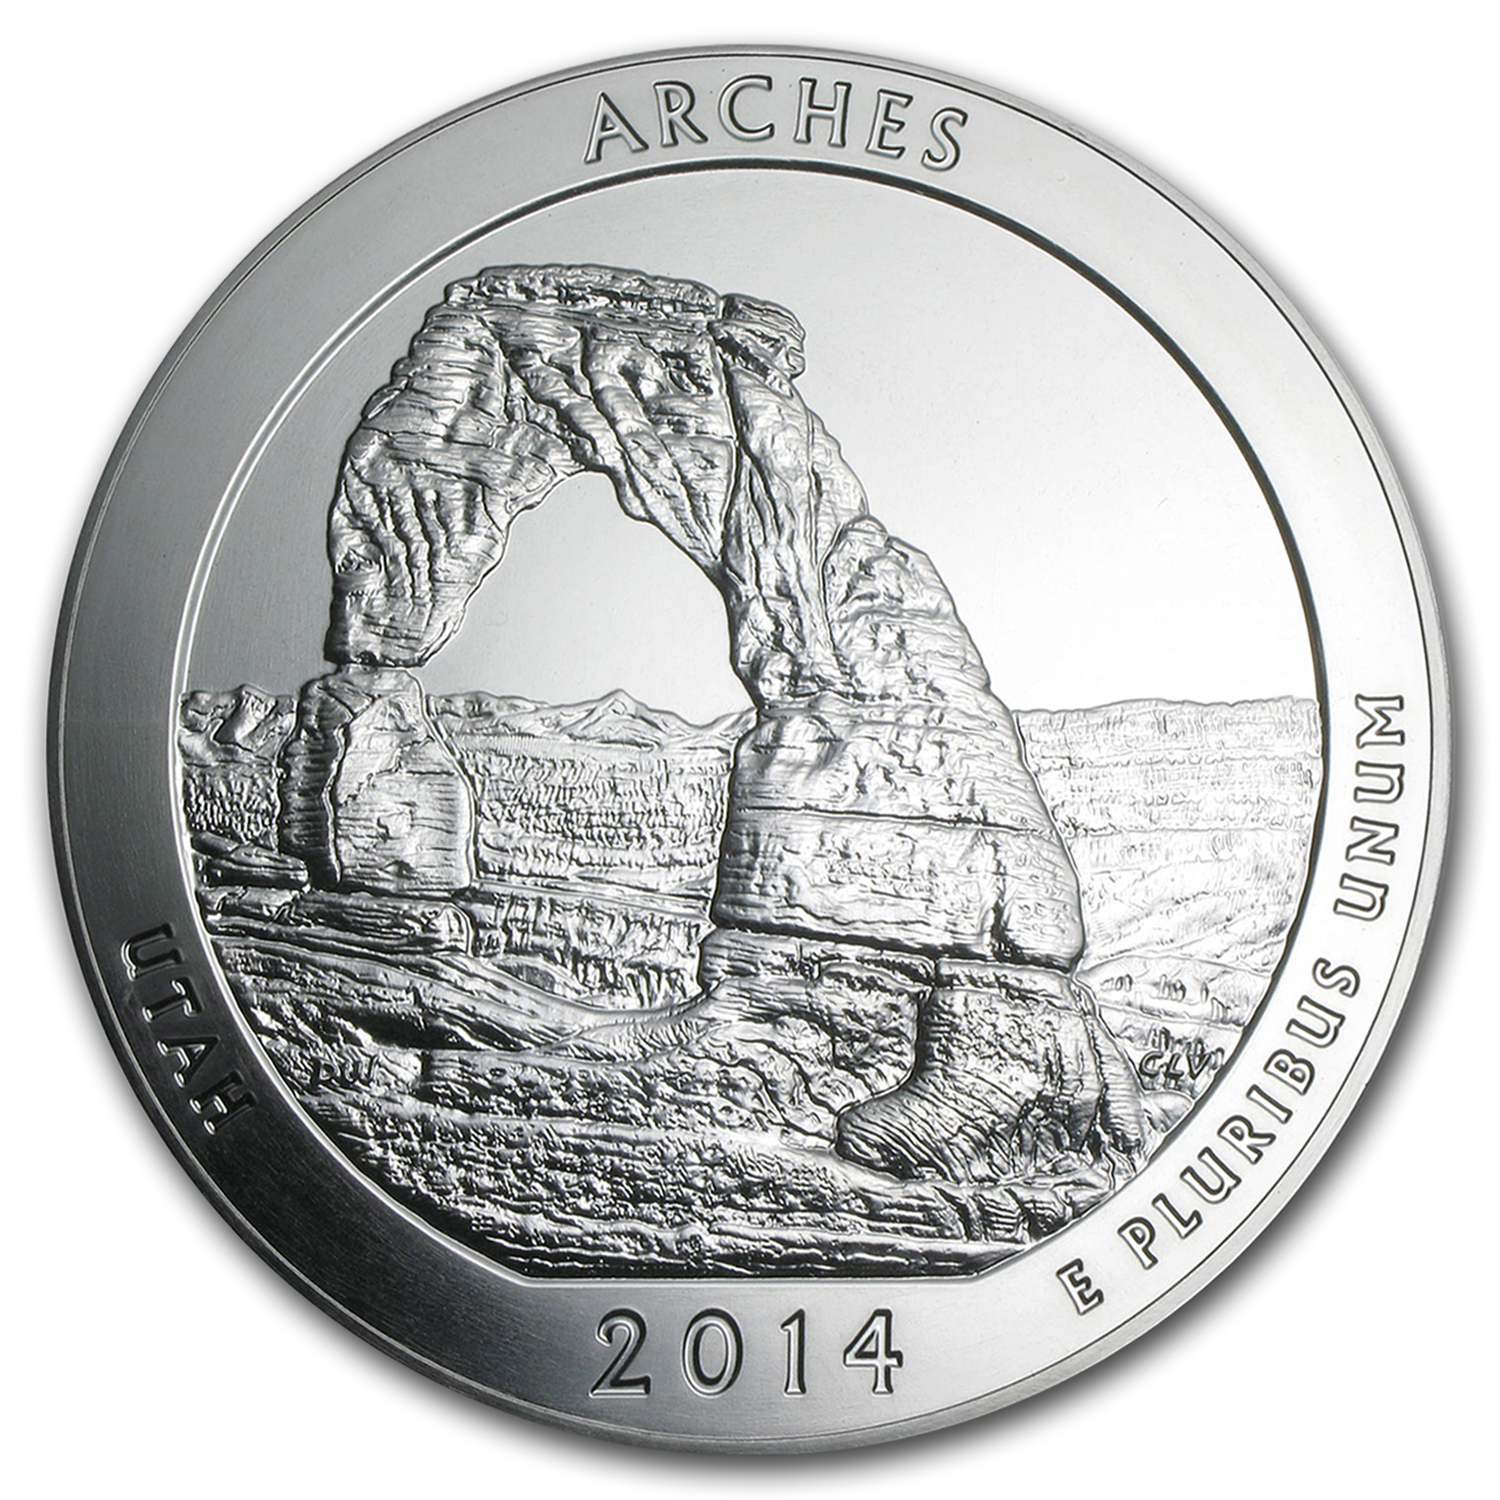 2014 5 oz Silver ATB Arches (10-coin MintDirect®)